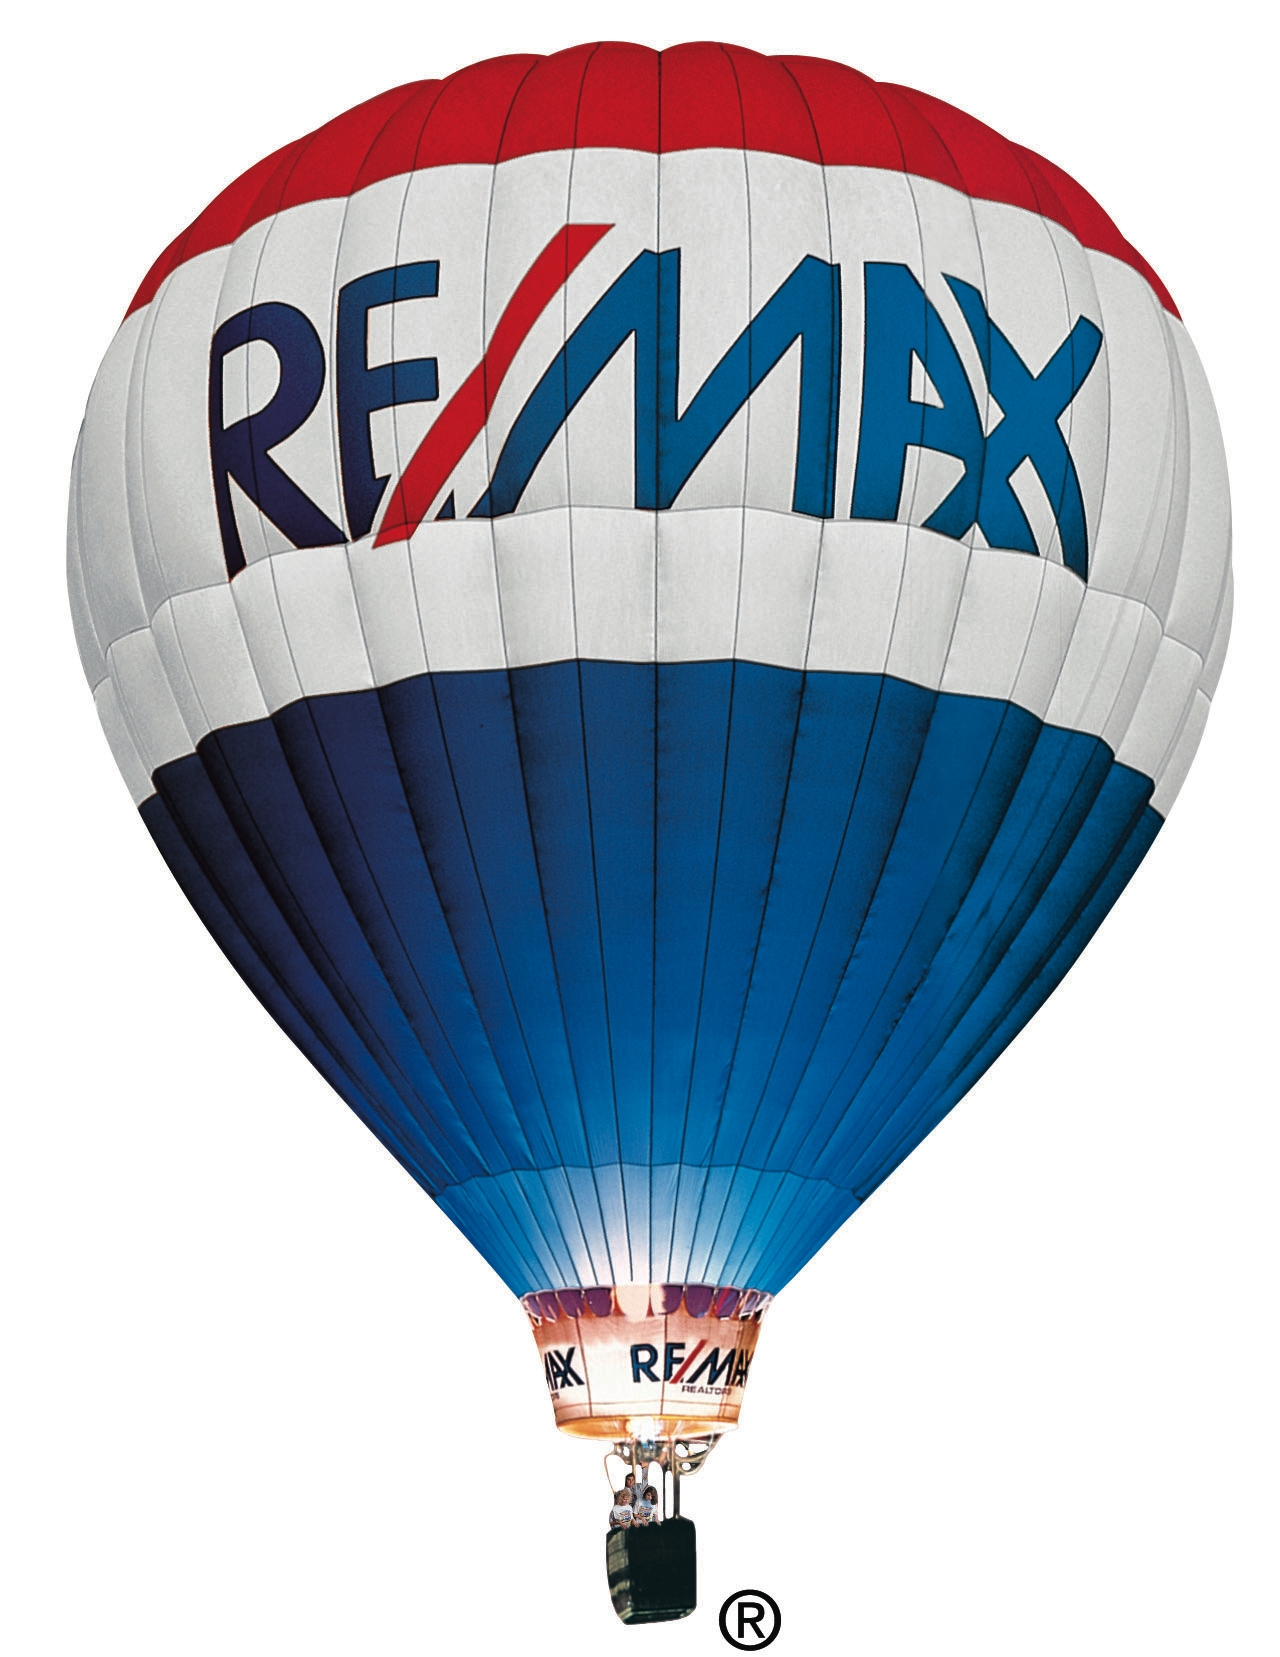 REMAX - Woodlands homes